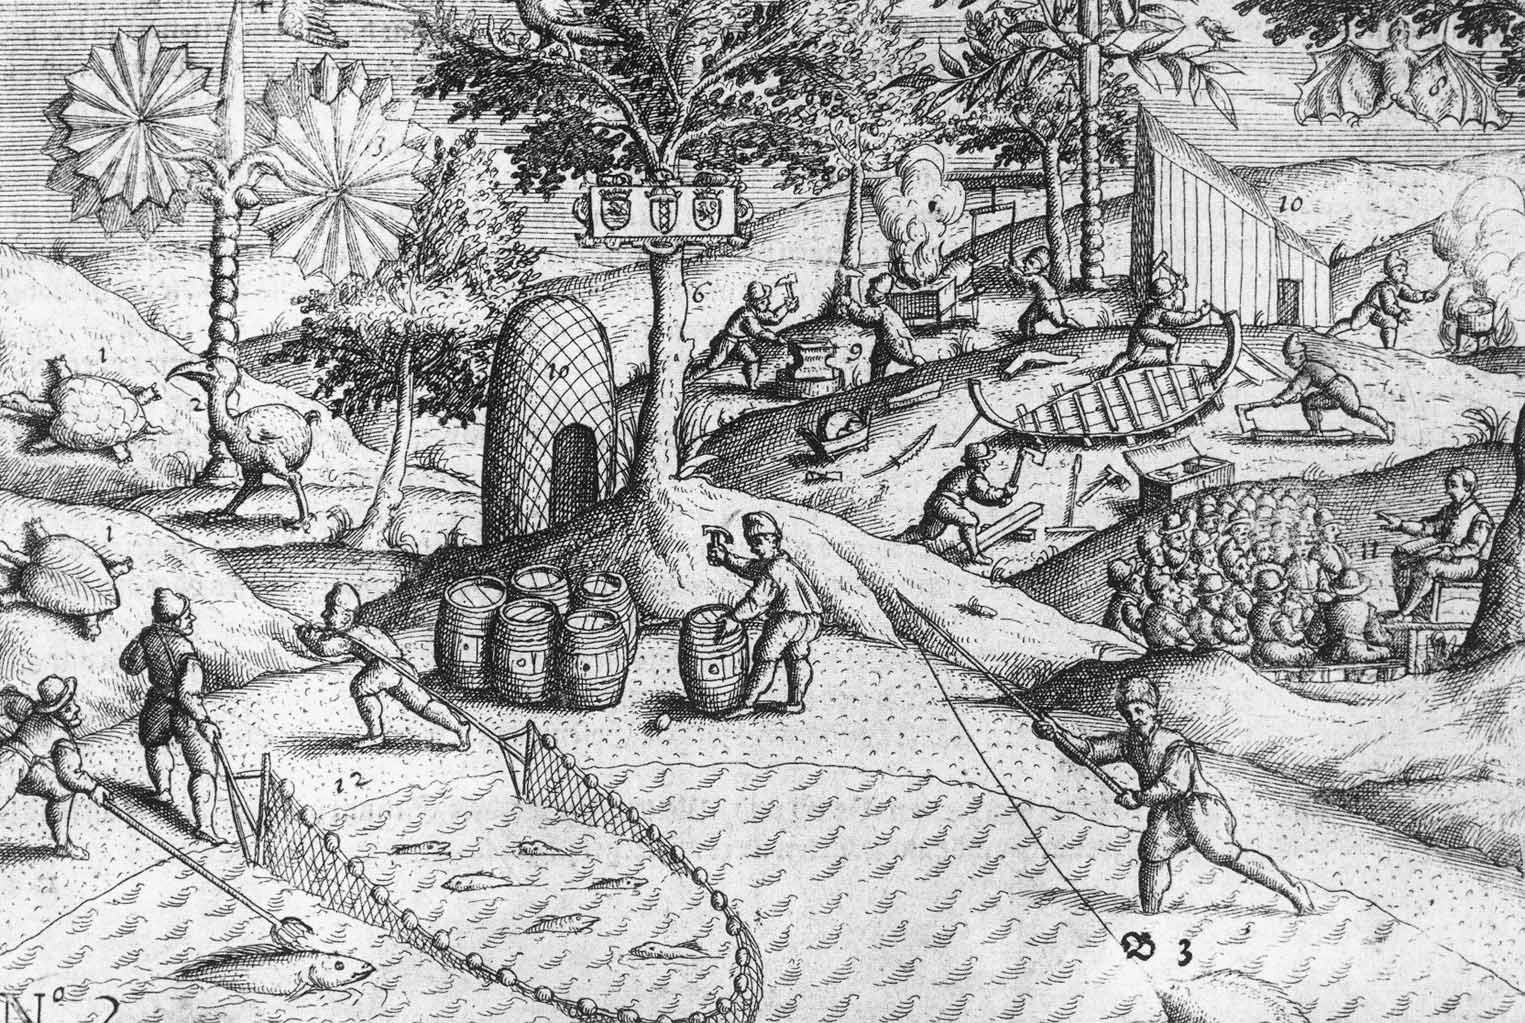 Dutch activities on the shore of Mauritius, as well as the first published depiction of a [[dodo